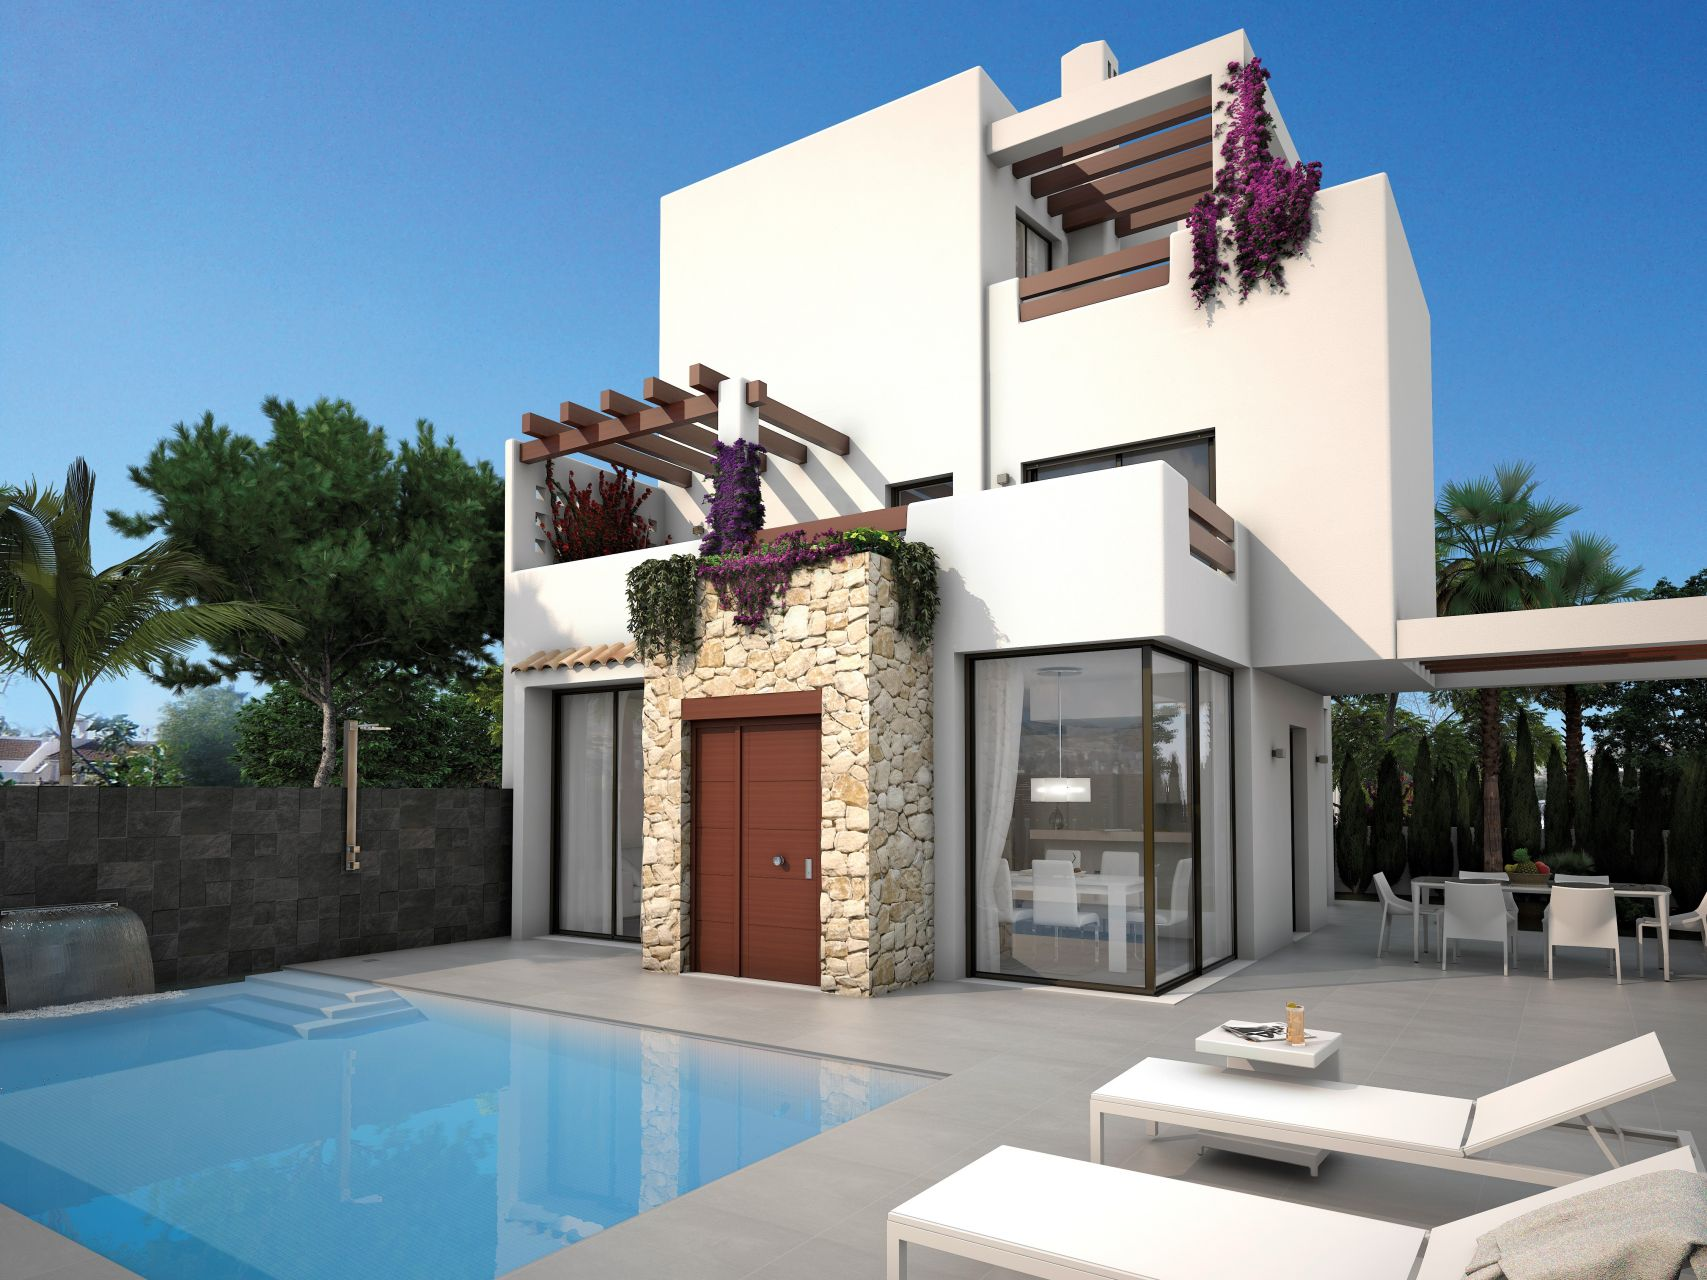 3 bedroom and 3 bathroom villa with pool 10